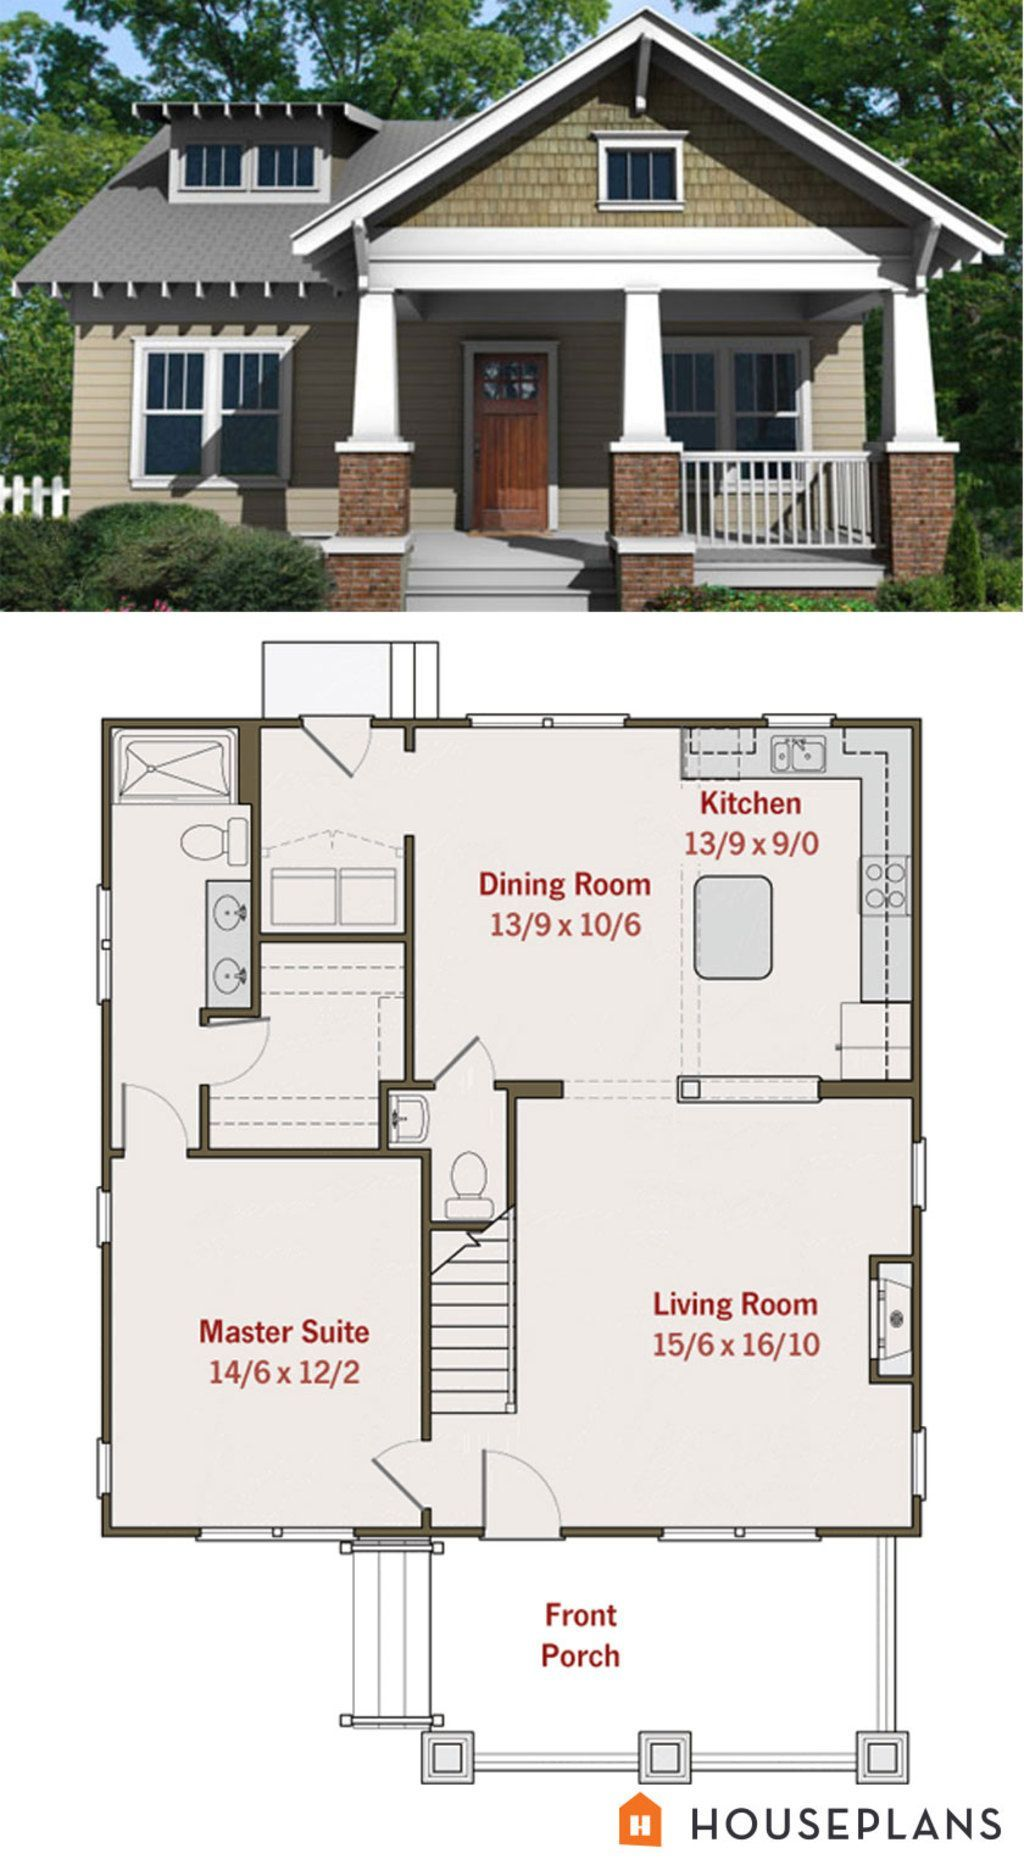 Bungalow House Floor Plan And Elevation In 2020 Craftsman Bungalow House Plans Bungalow Floor Plans Craftsman House Plans